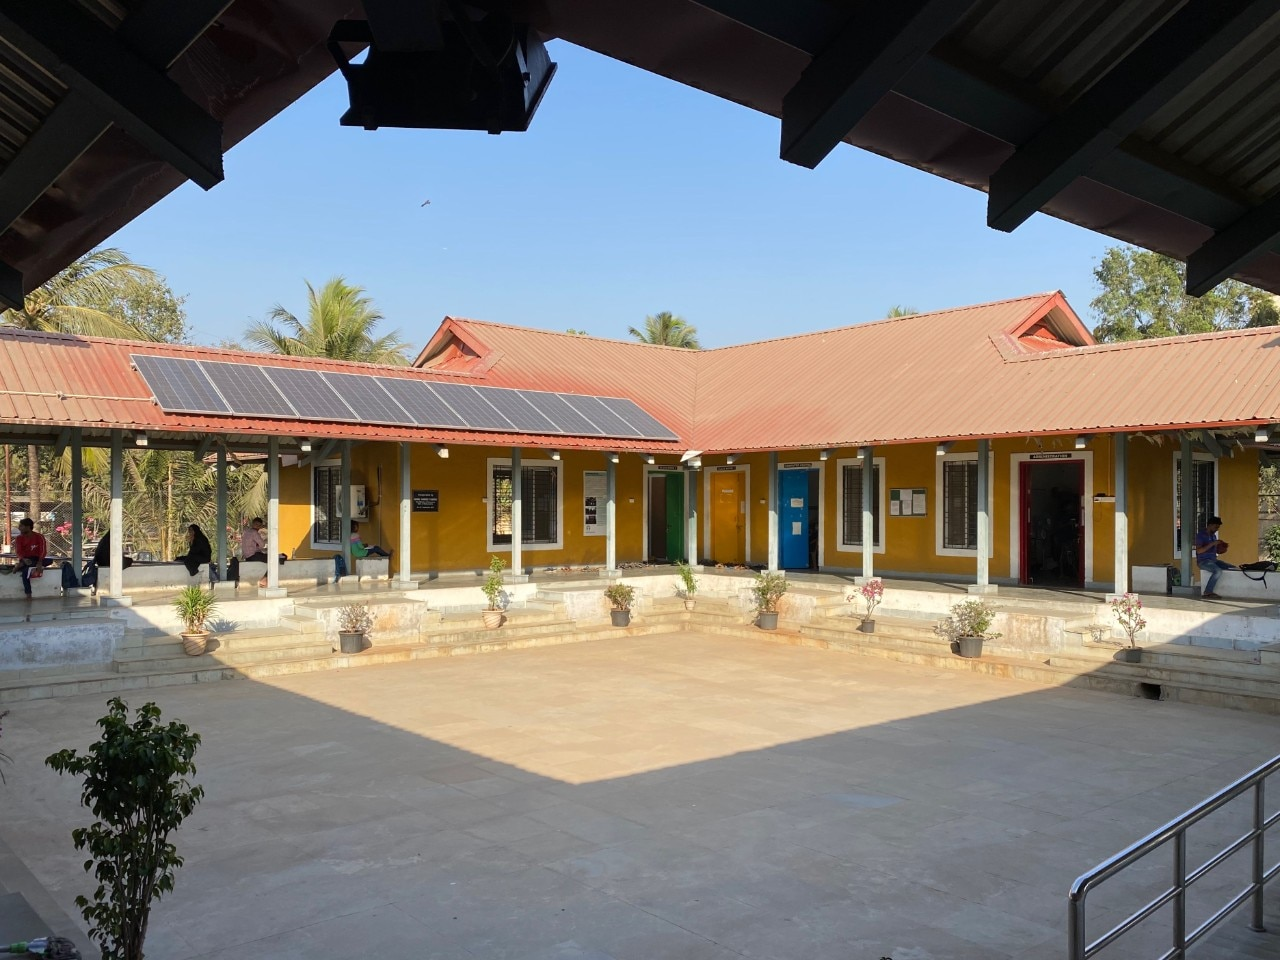 Image of learning facilities operated by TISS in M-East Ward as part of social outreach program.